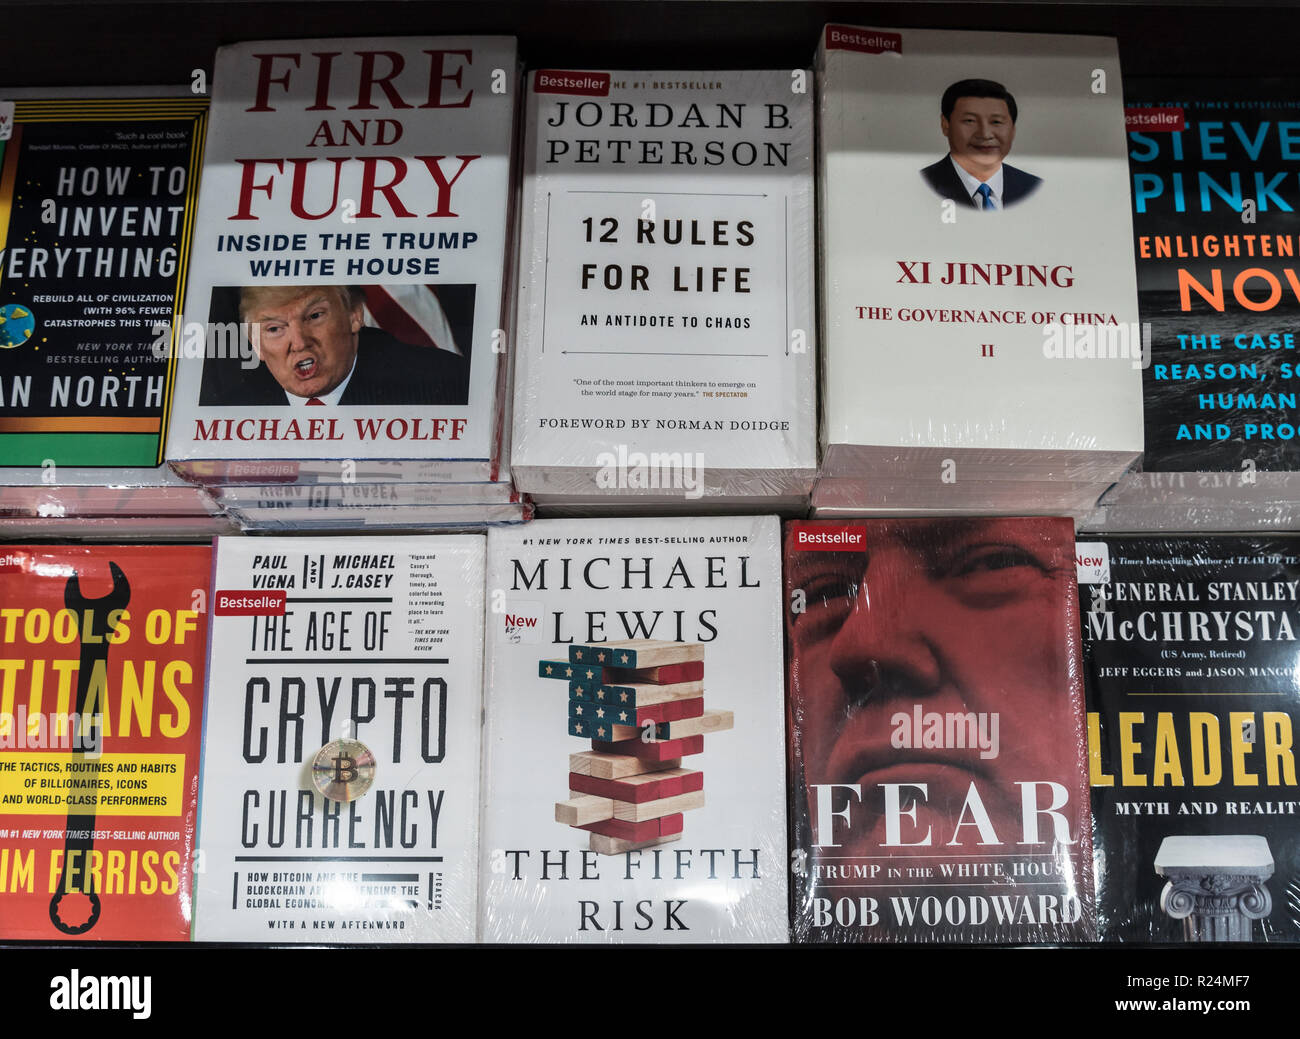 Jakarta, Indonesia - November 13 2018: Books about Donald Trump and Xi Jinping are displayed in a modern bookstore. - Stock Image